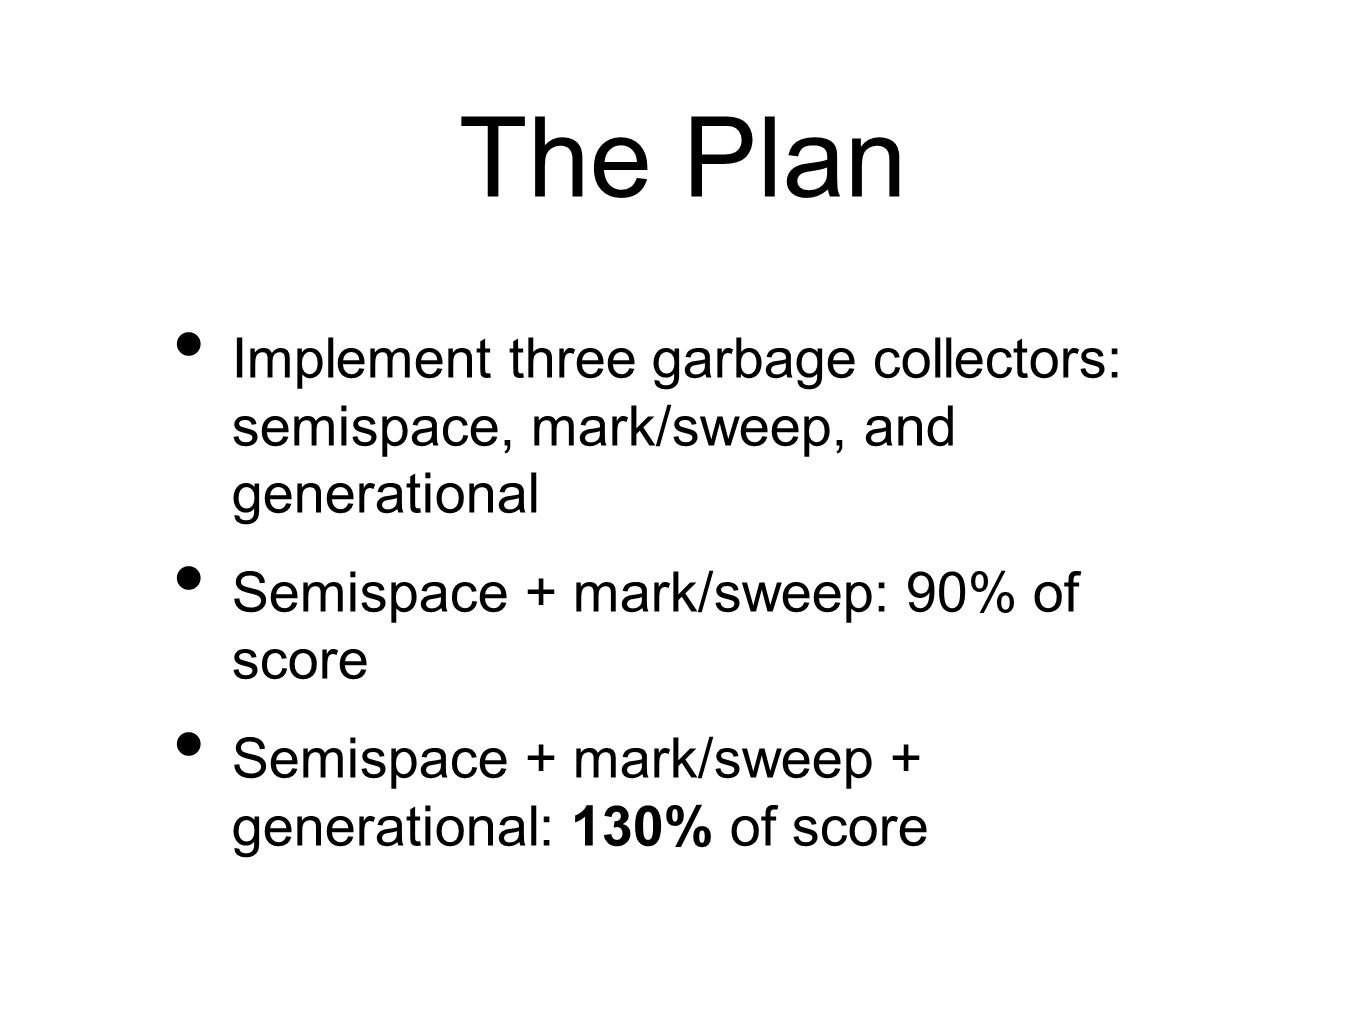 The Plan Implement three garbage collectors: semispace, mark/sweep, and generational Semispace + mark/sweep: 90% of score Semispace + mark/sweep + generational: 130% of score